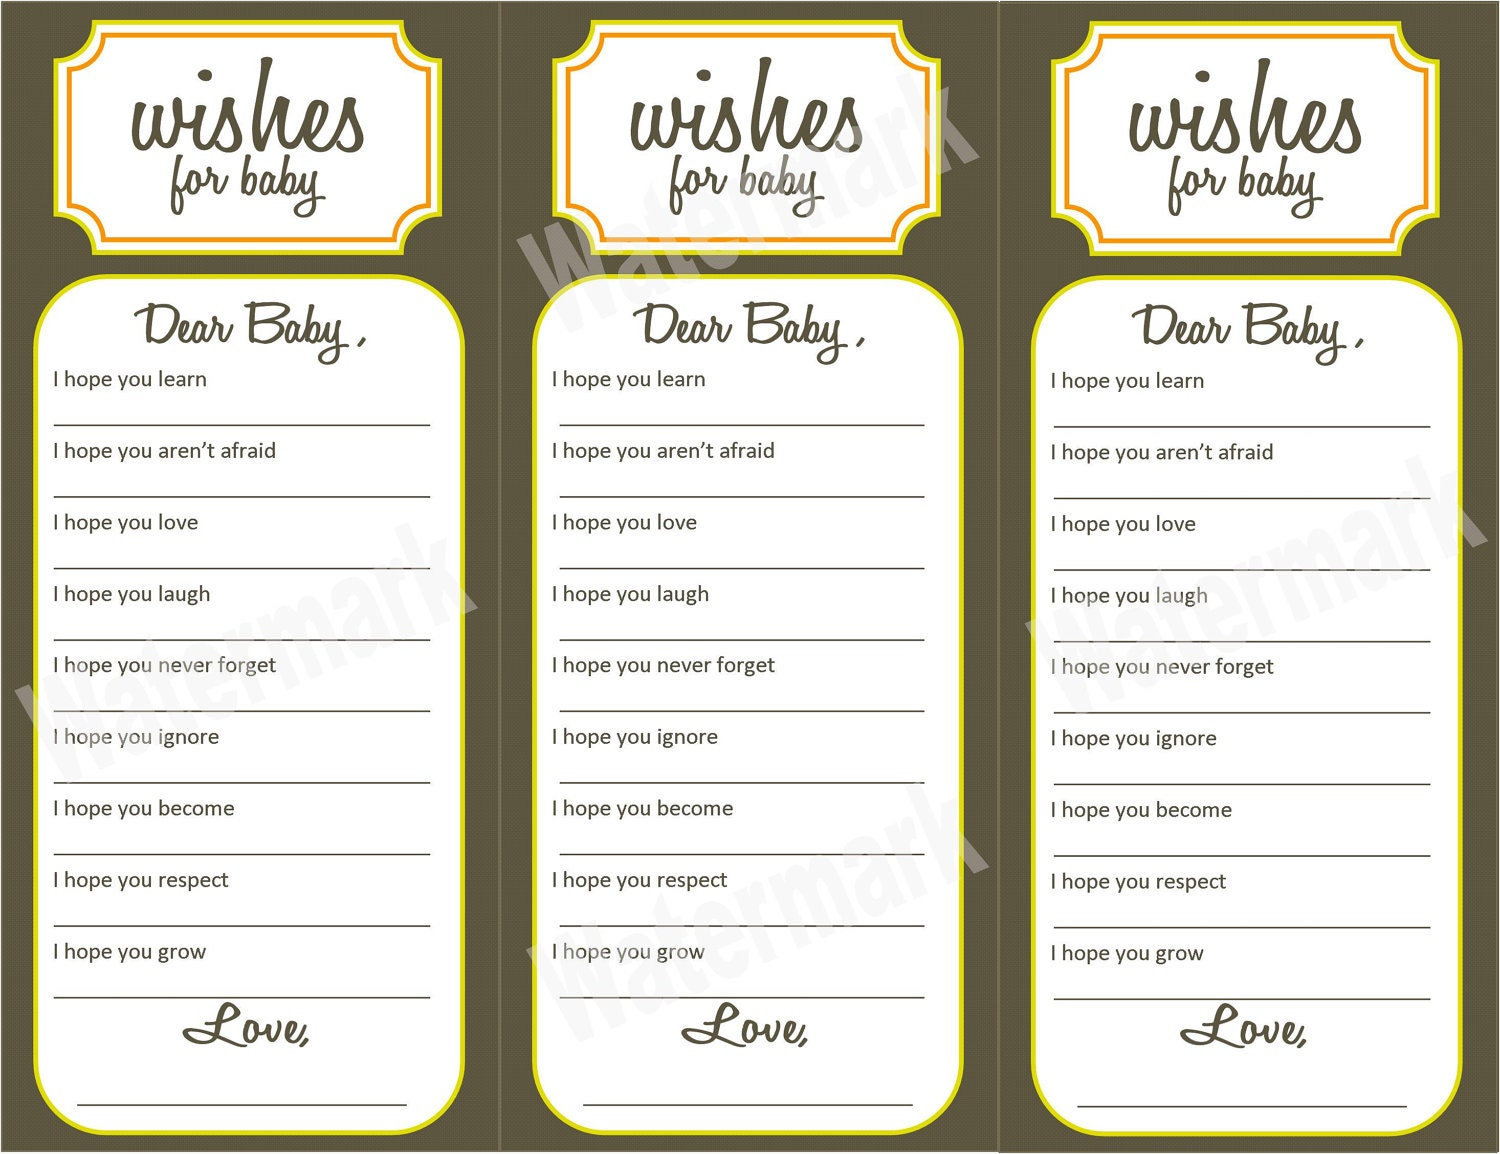 Wishes for baby baby shower activity printable by kjones4099 for Wishes for baby printable template